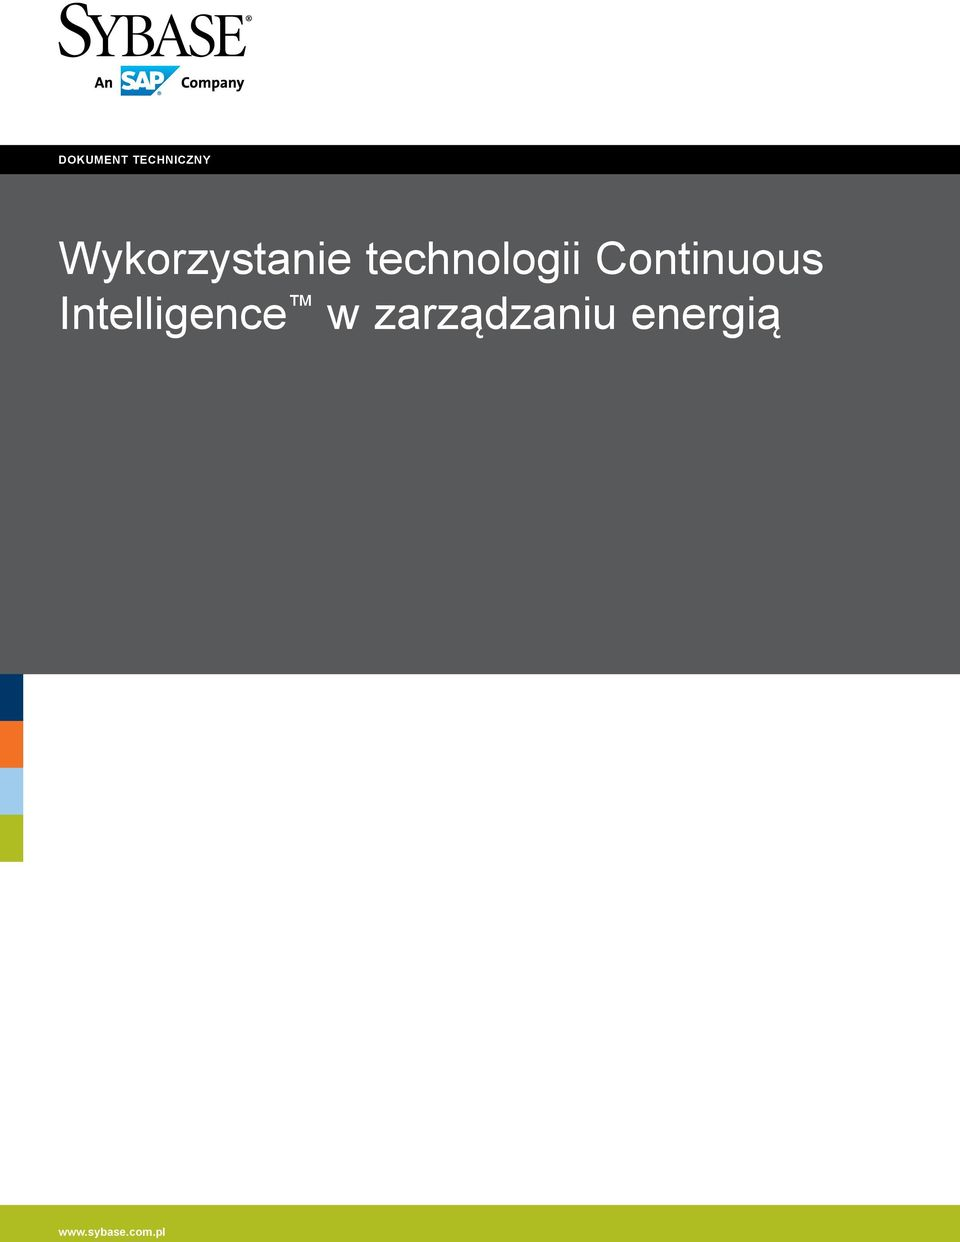 Continuous Intelligence w